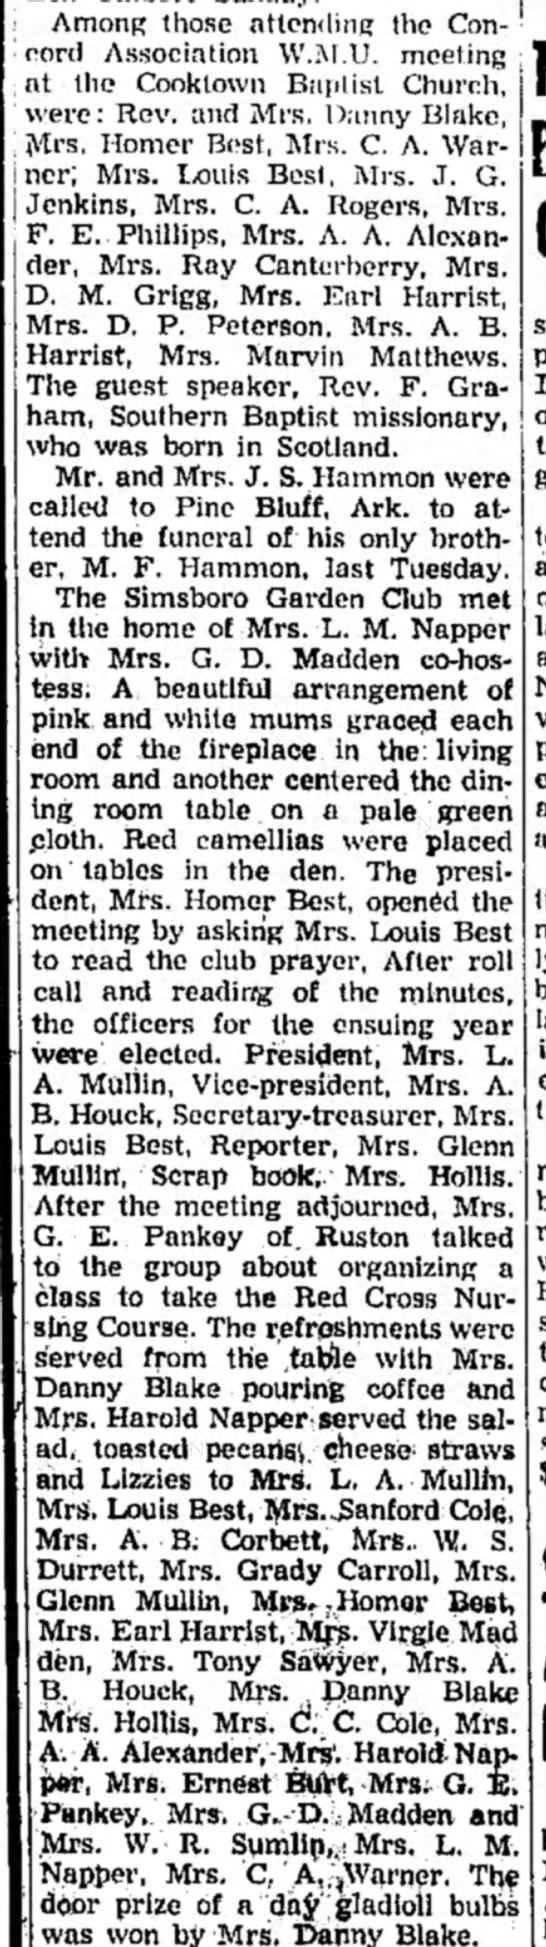 Concord Assoc WMU 1957 Jan 24 - Among those attending the Concord Association...